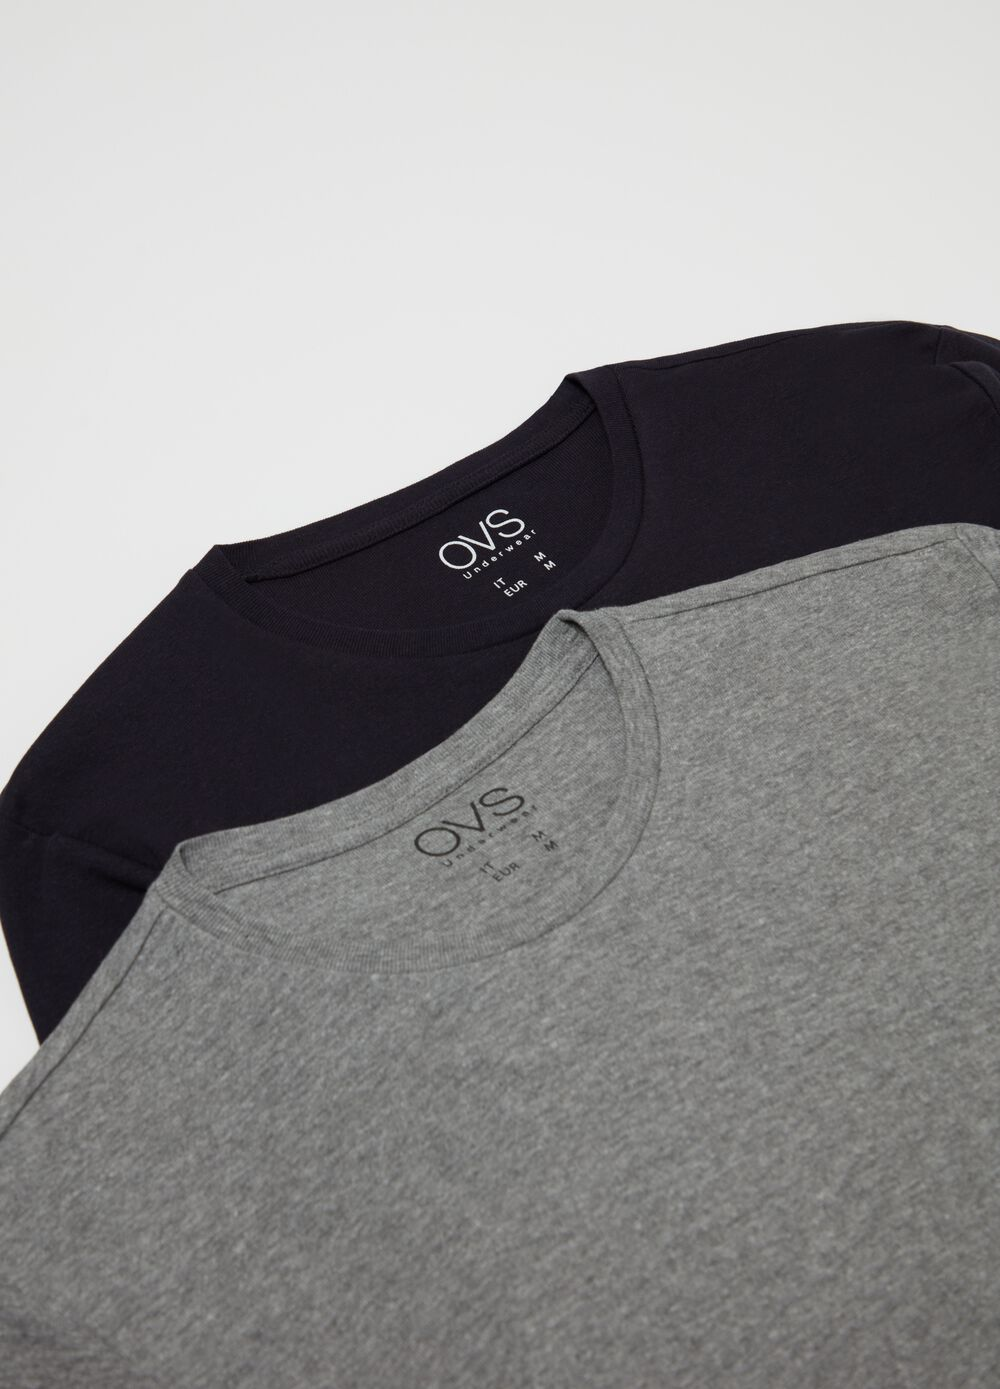 Two-pack undershirts